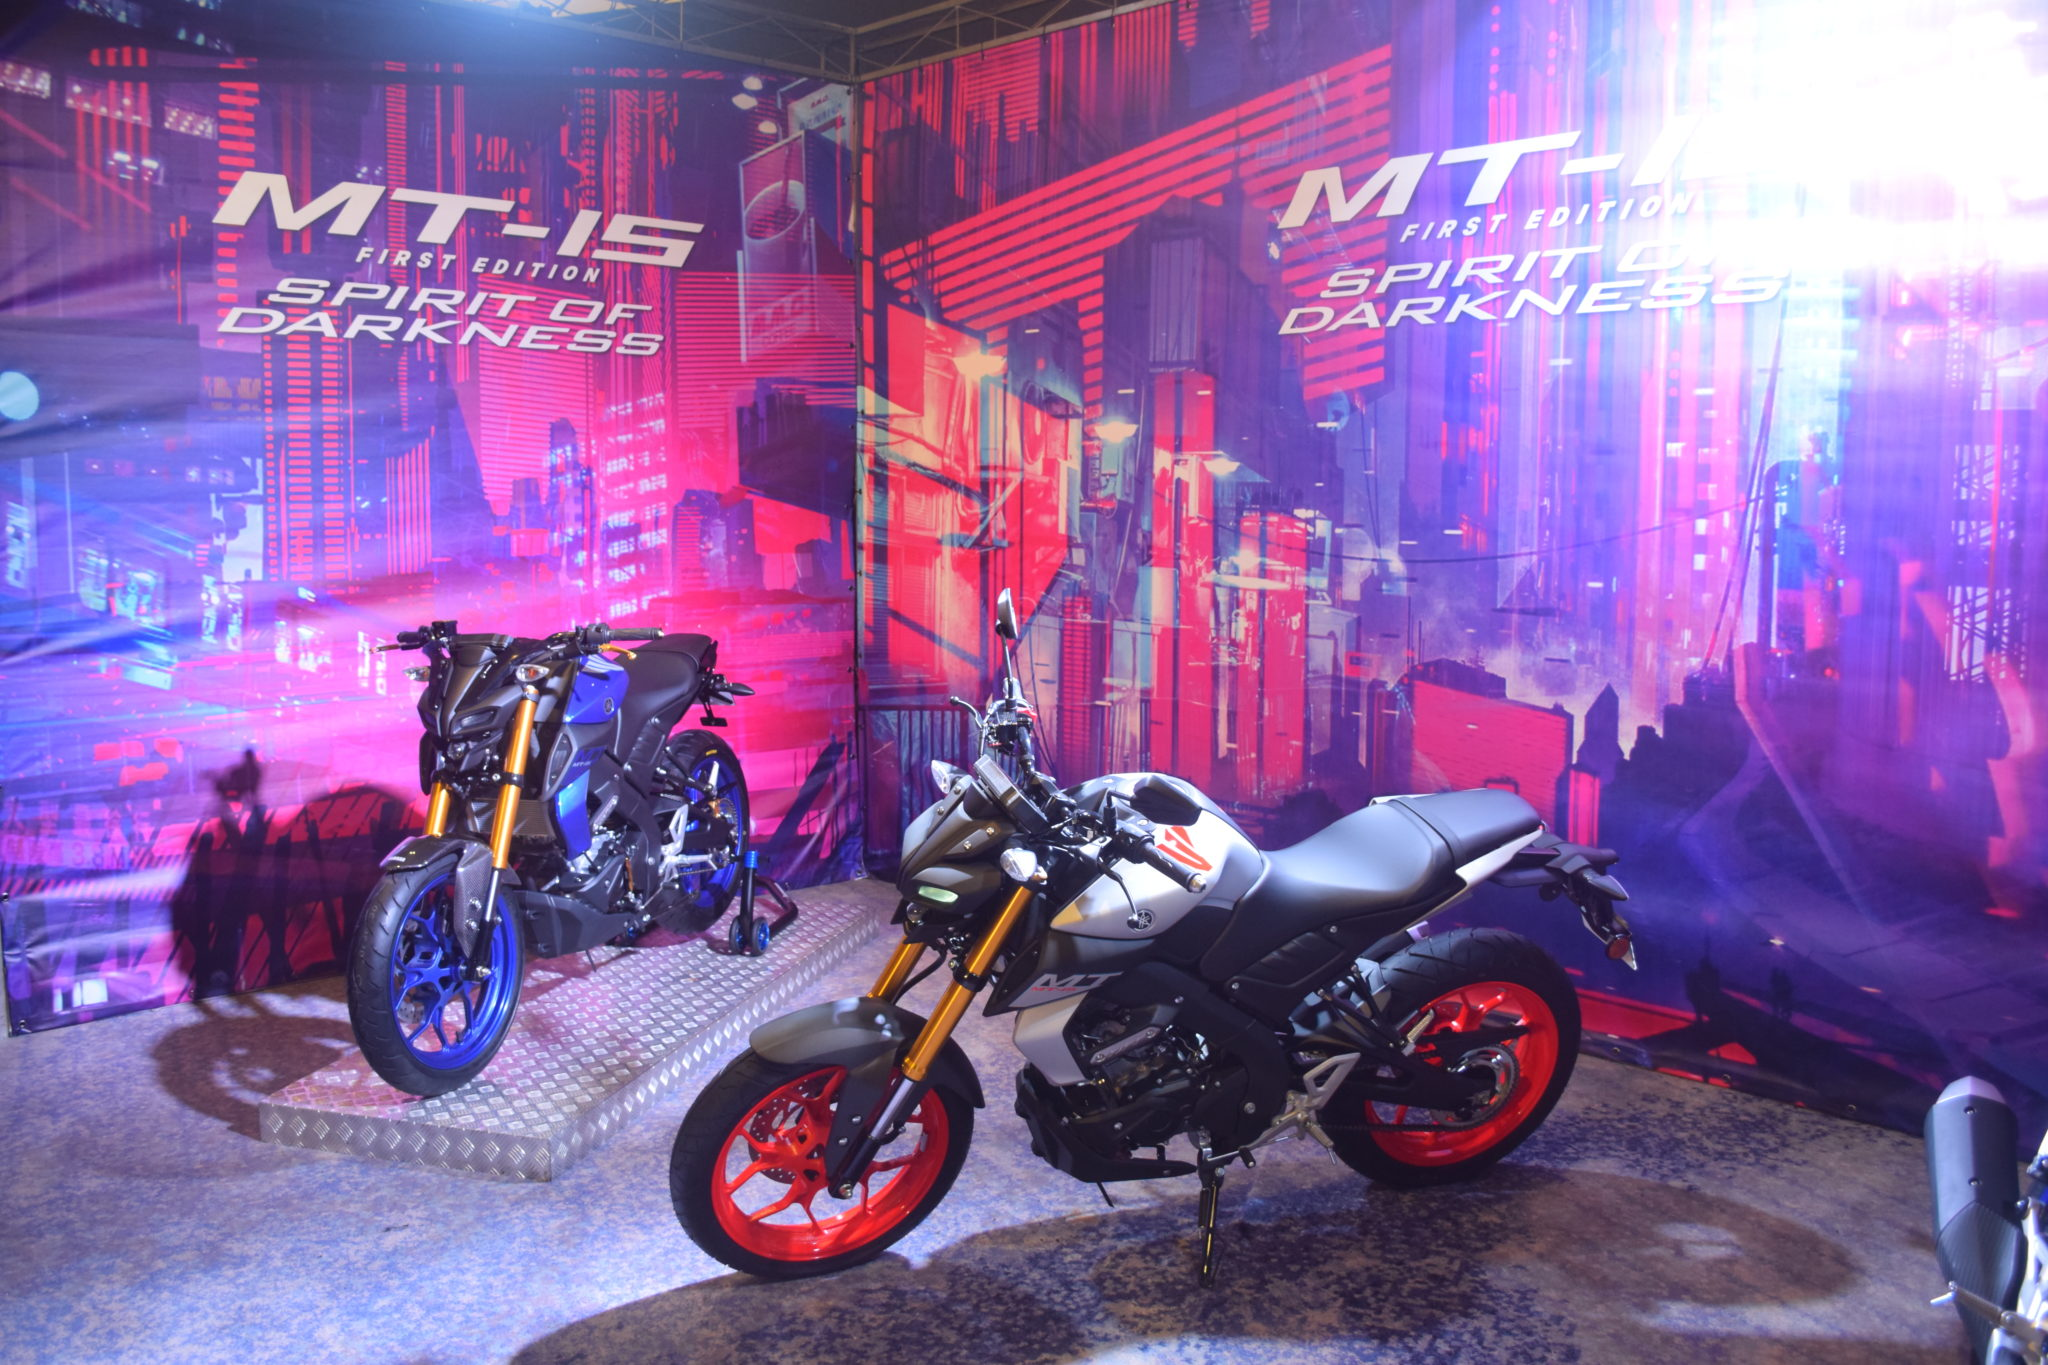 2021 Yamaha MT-15 pricing details announced for Malaysia - RM 11,988